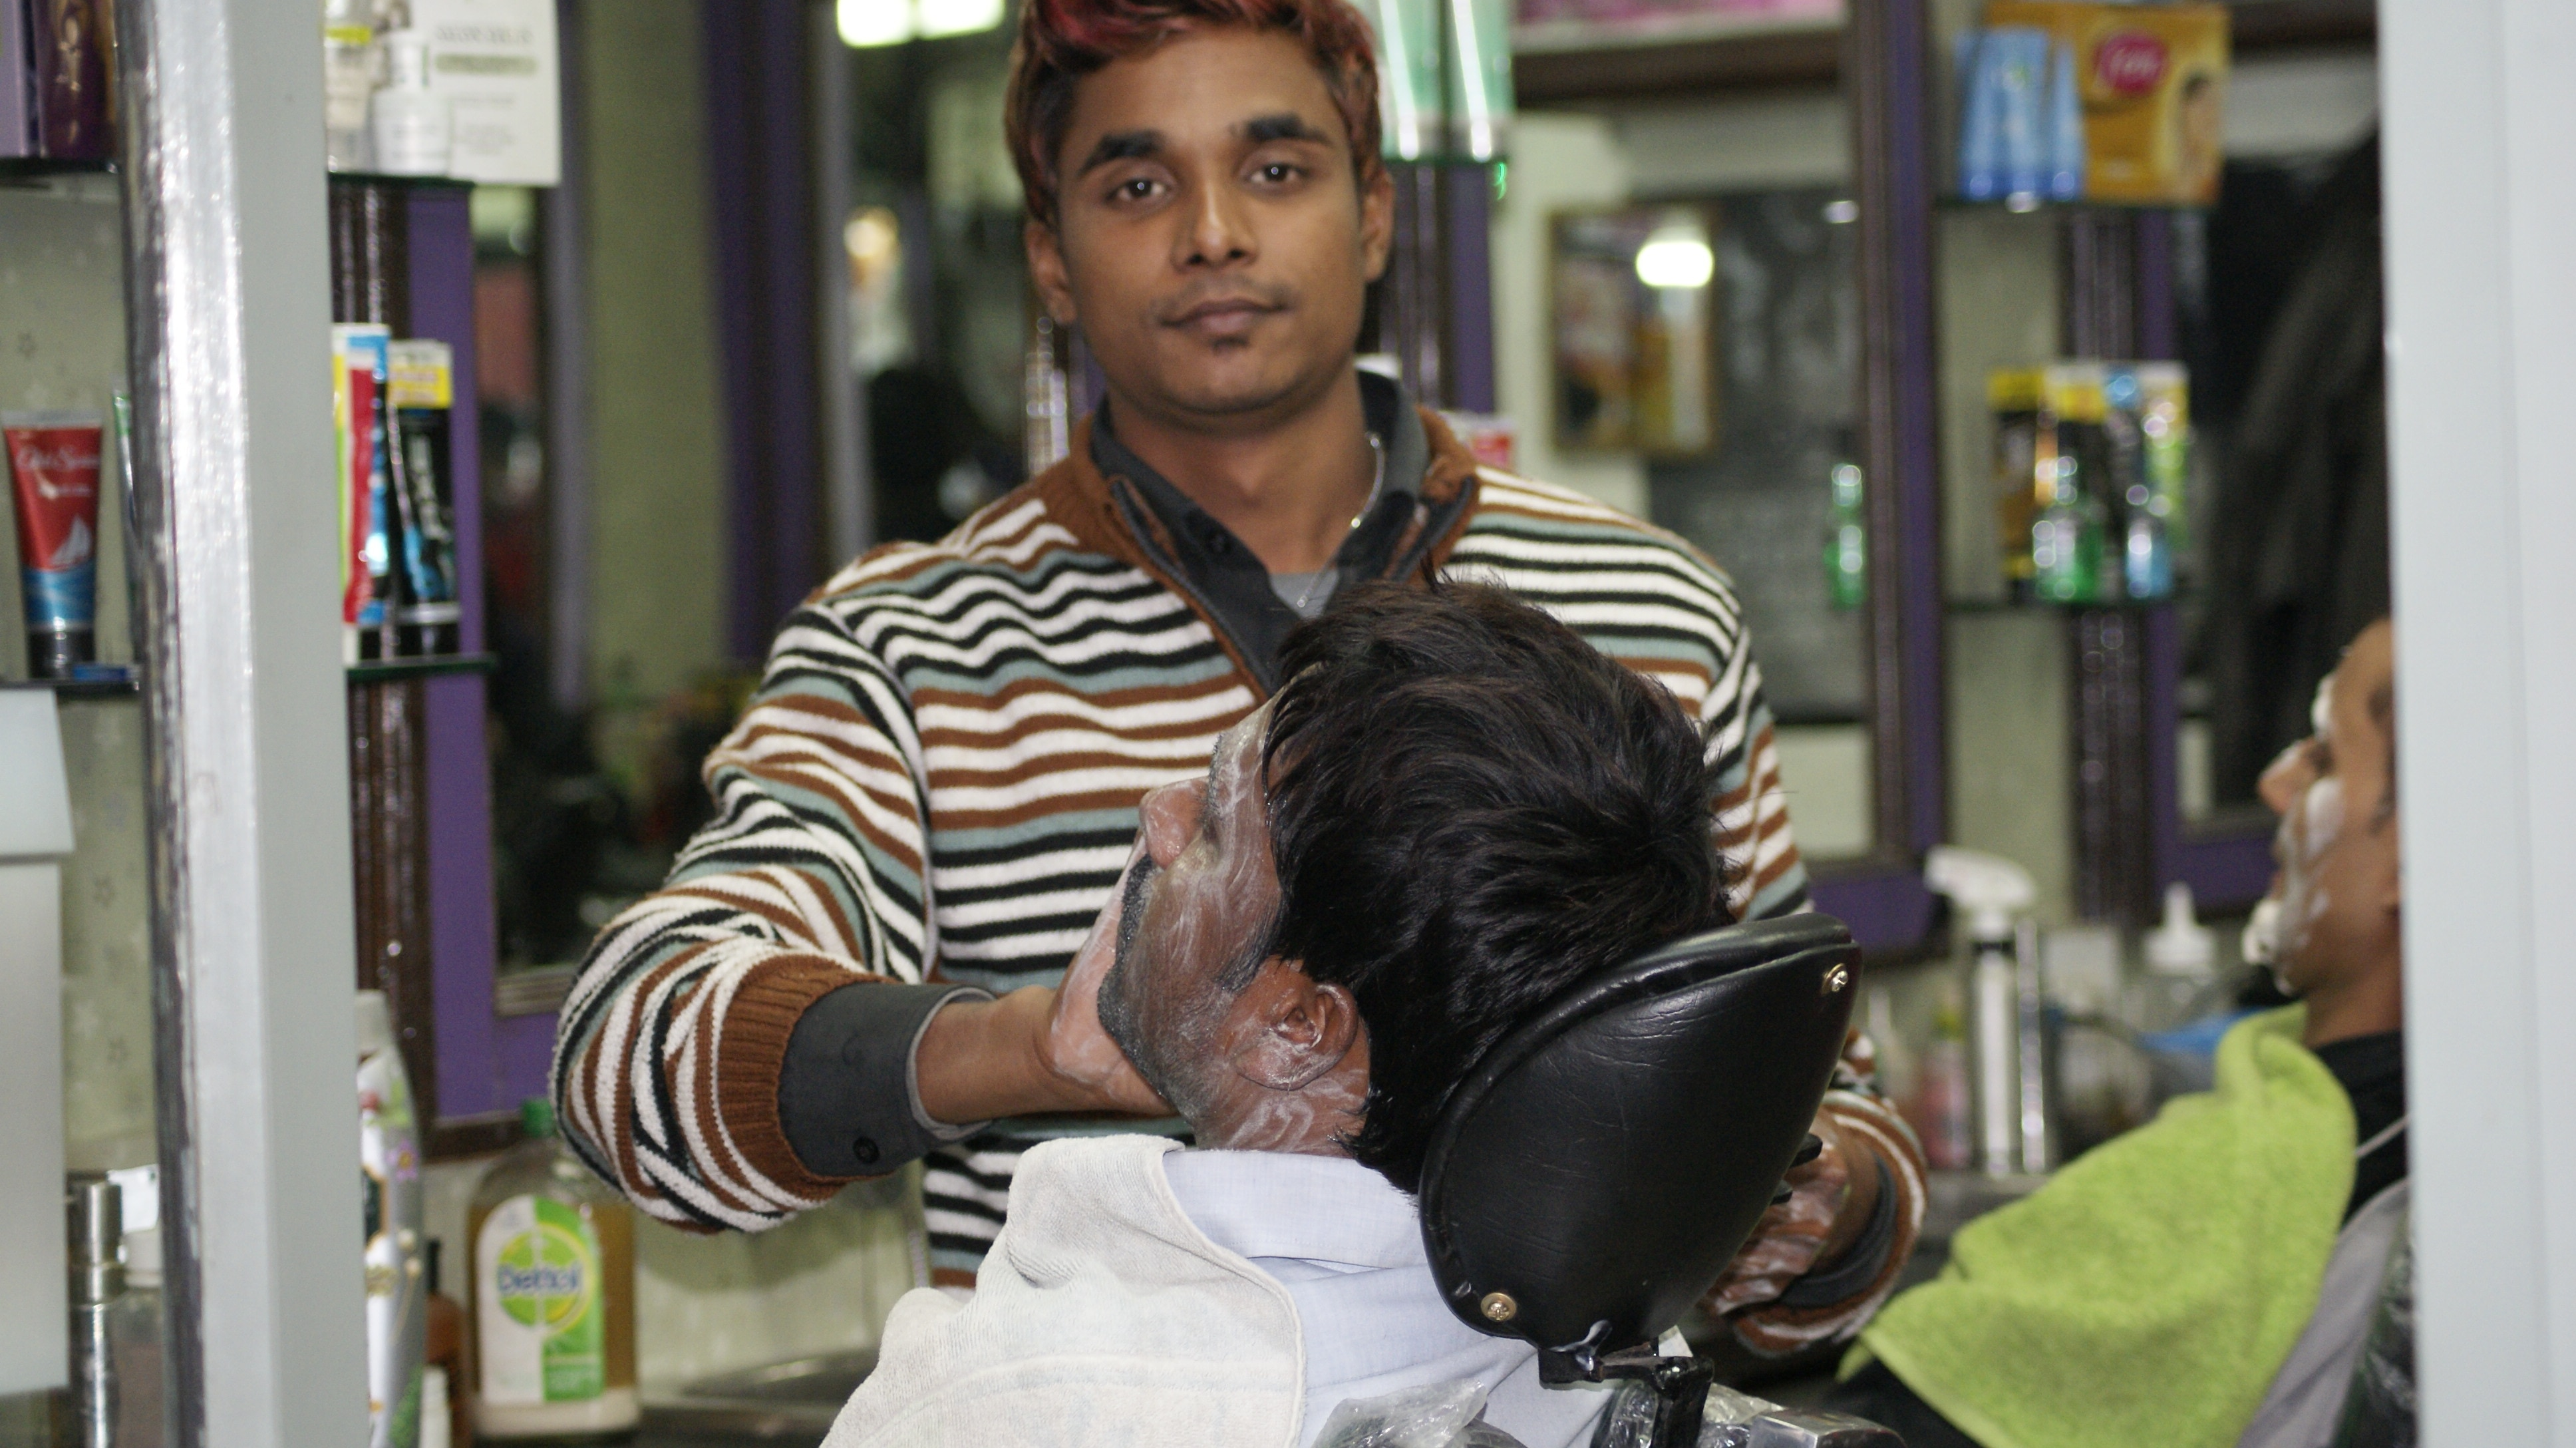 DESIRE HAIR CUTTING SALOON